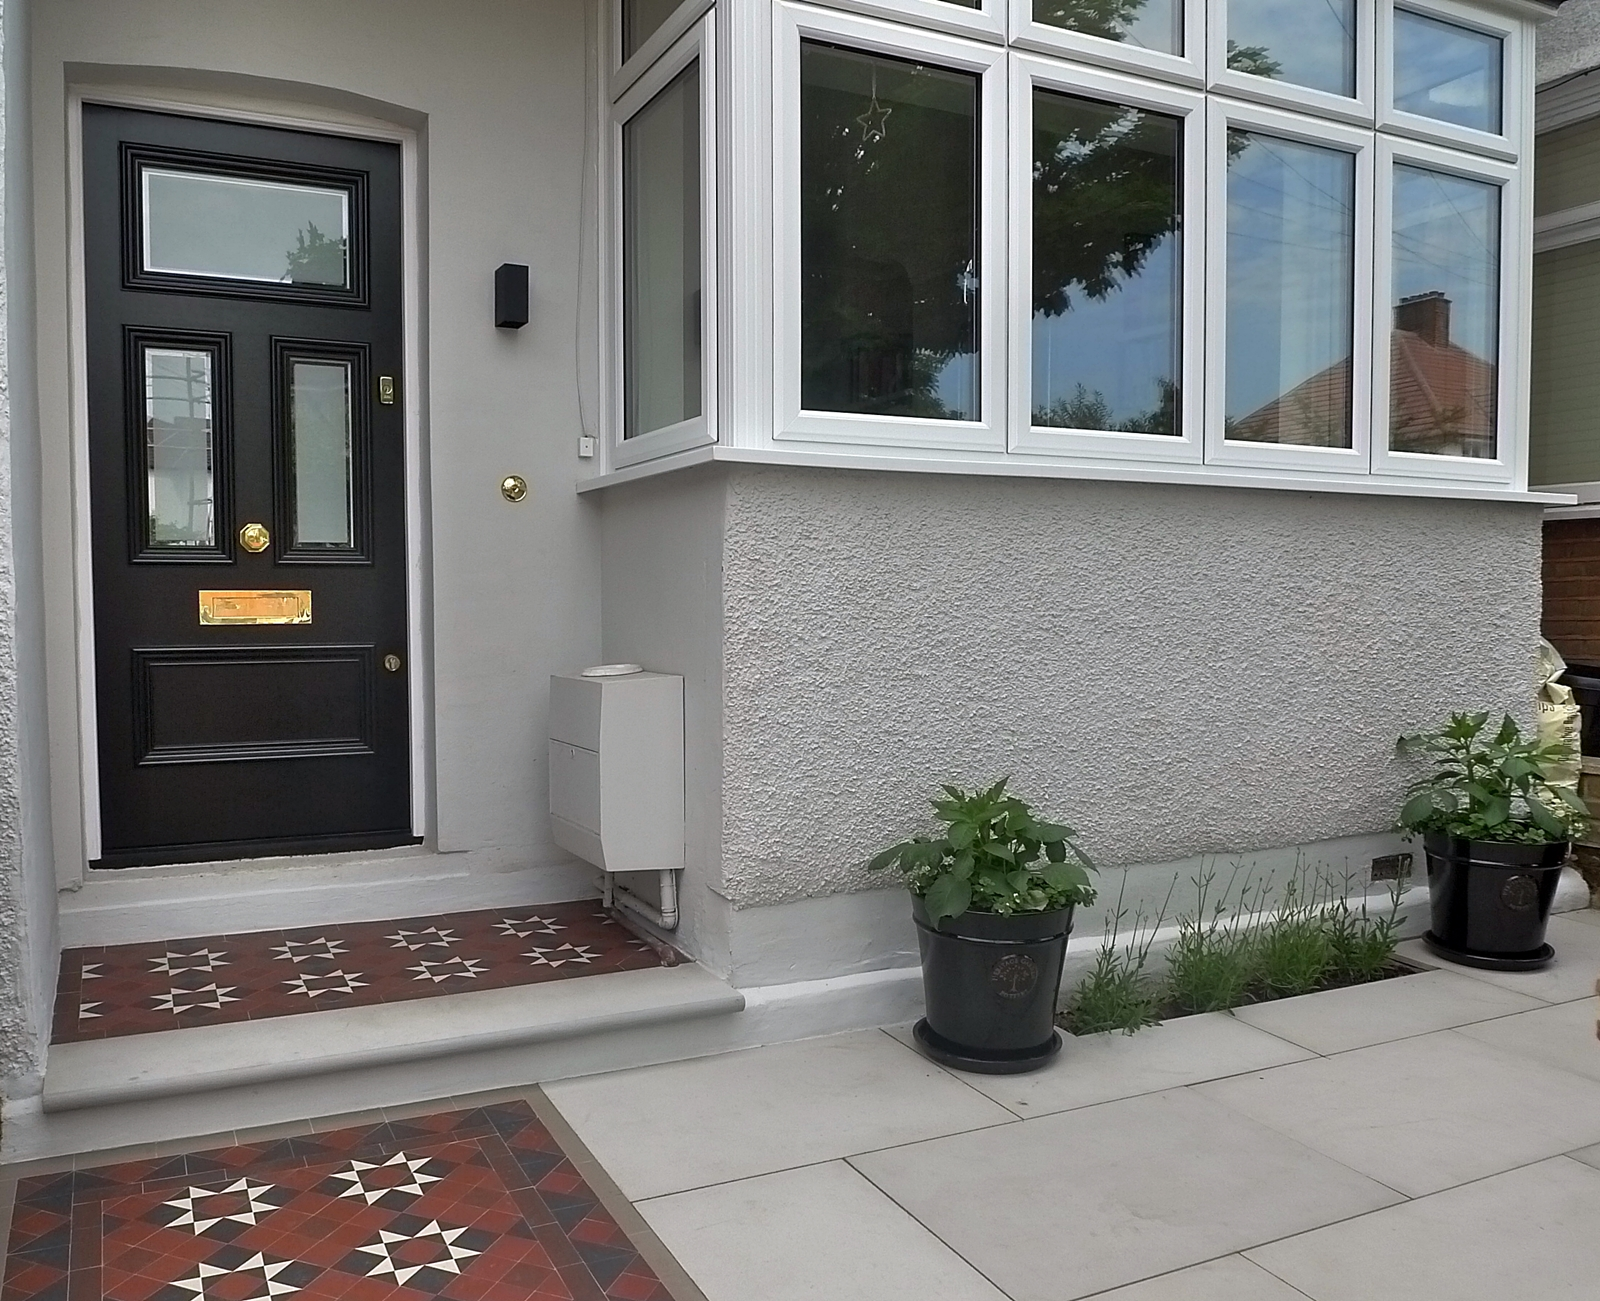 london front garden company mosaic man victorian tile path streatham brixton herne hill camberwell tulse hill east dulwich london